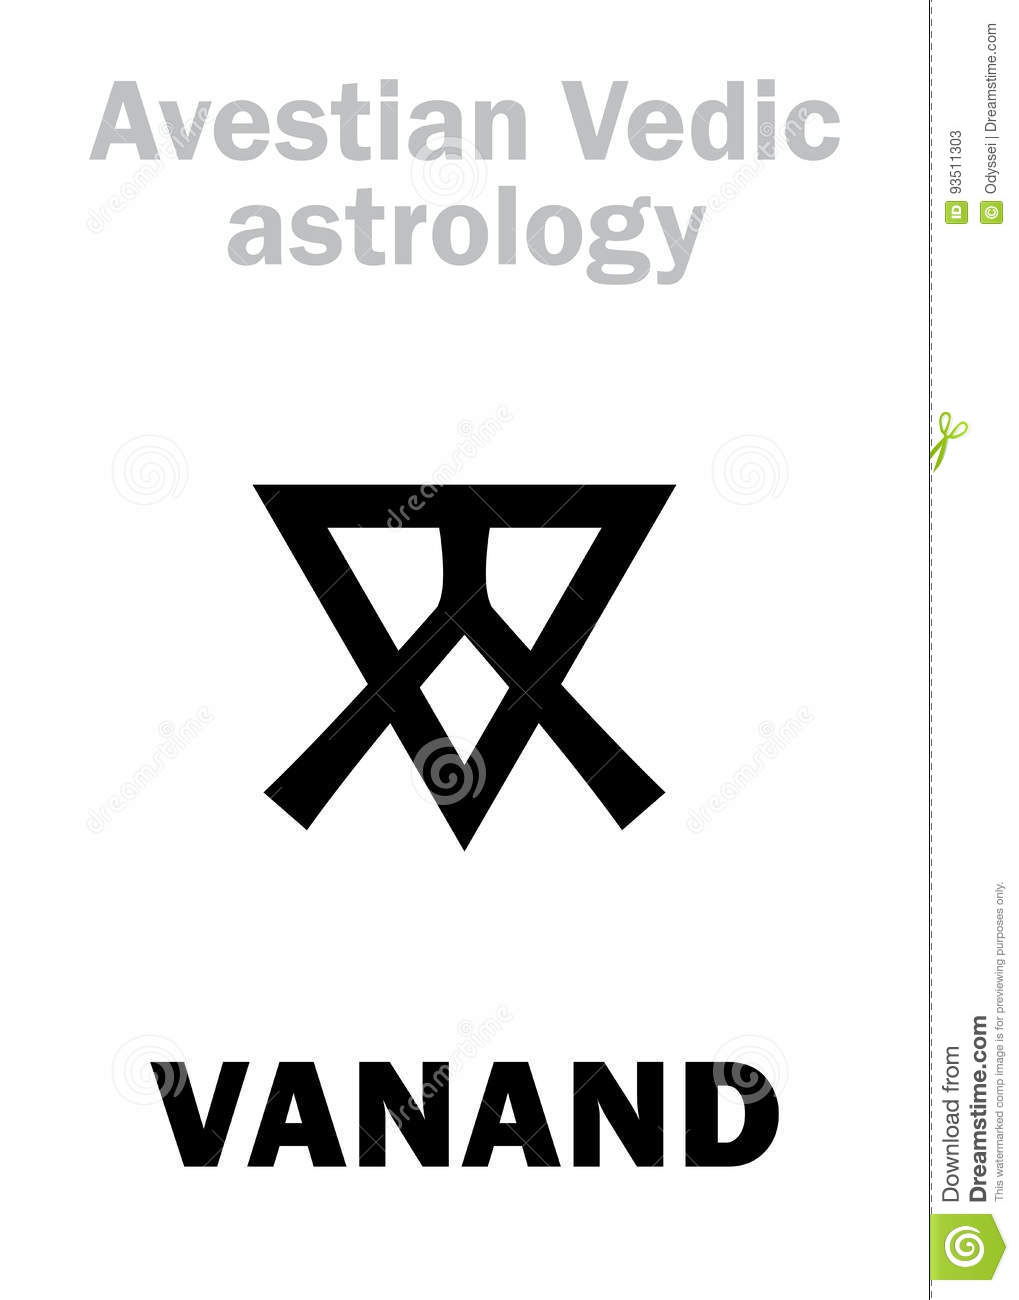 Astrology: astral planet VANAND